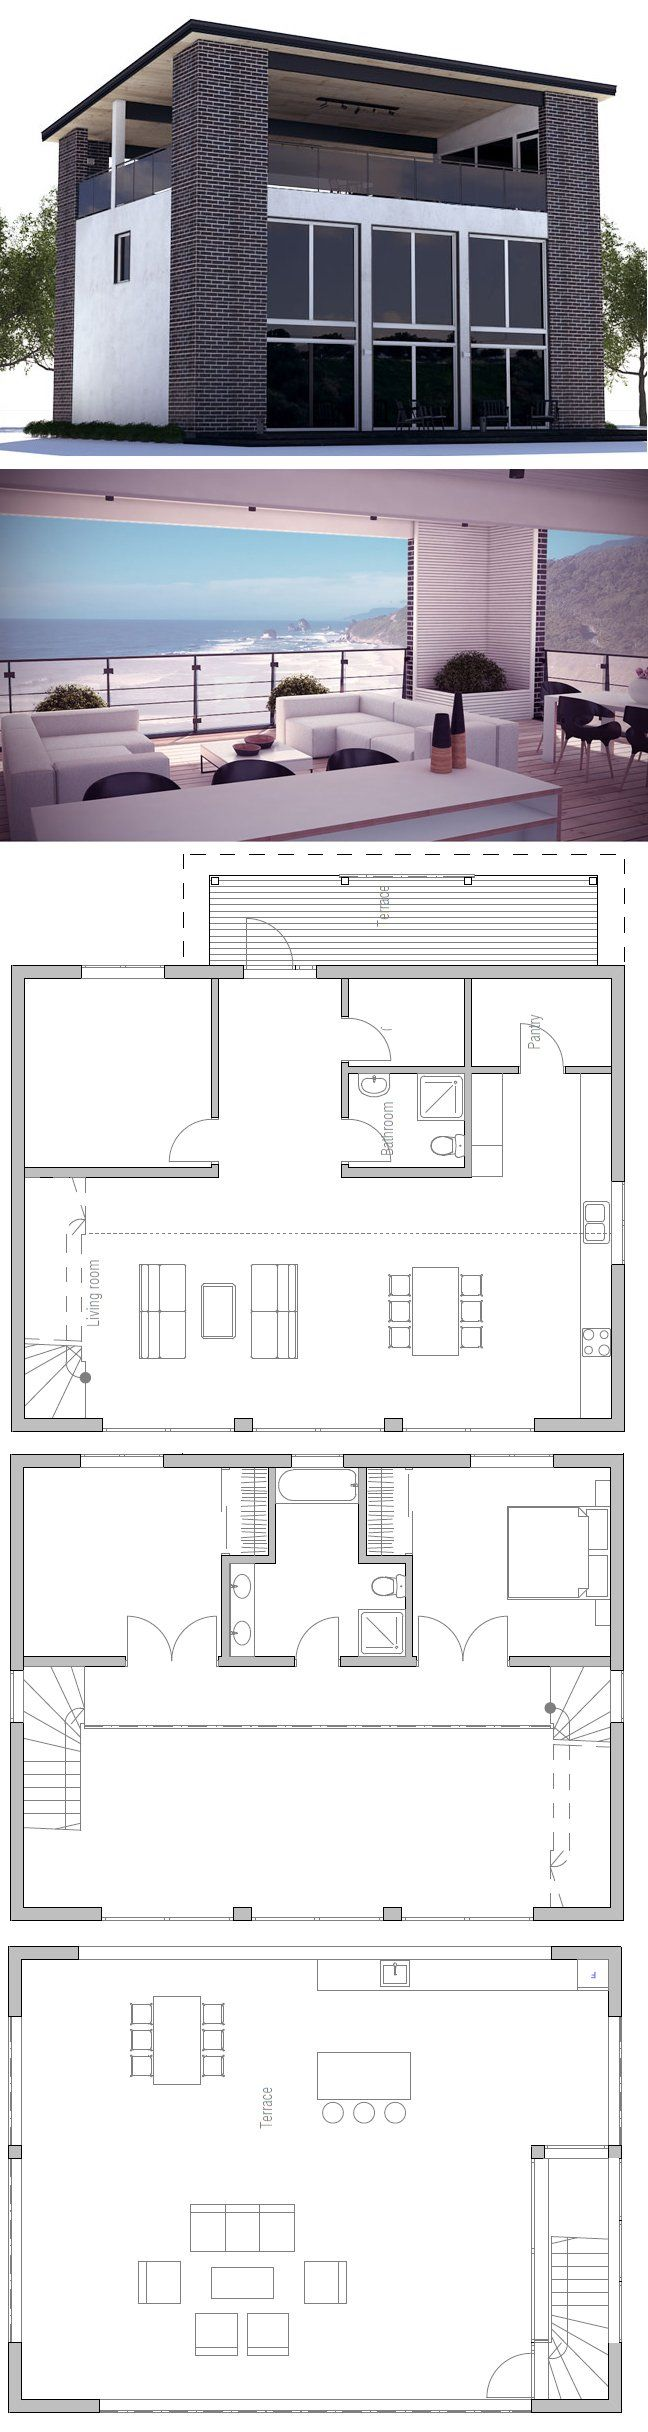 Modern house plan with rooftop terrace three bedrooms high ceilings